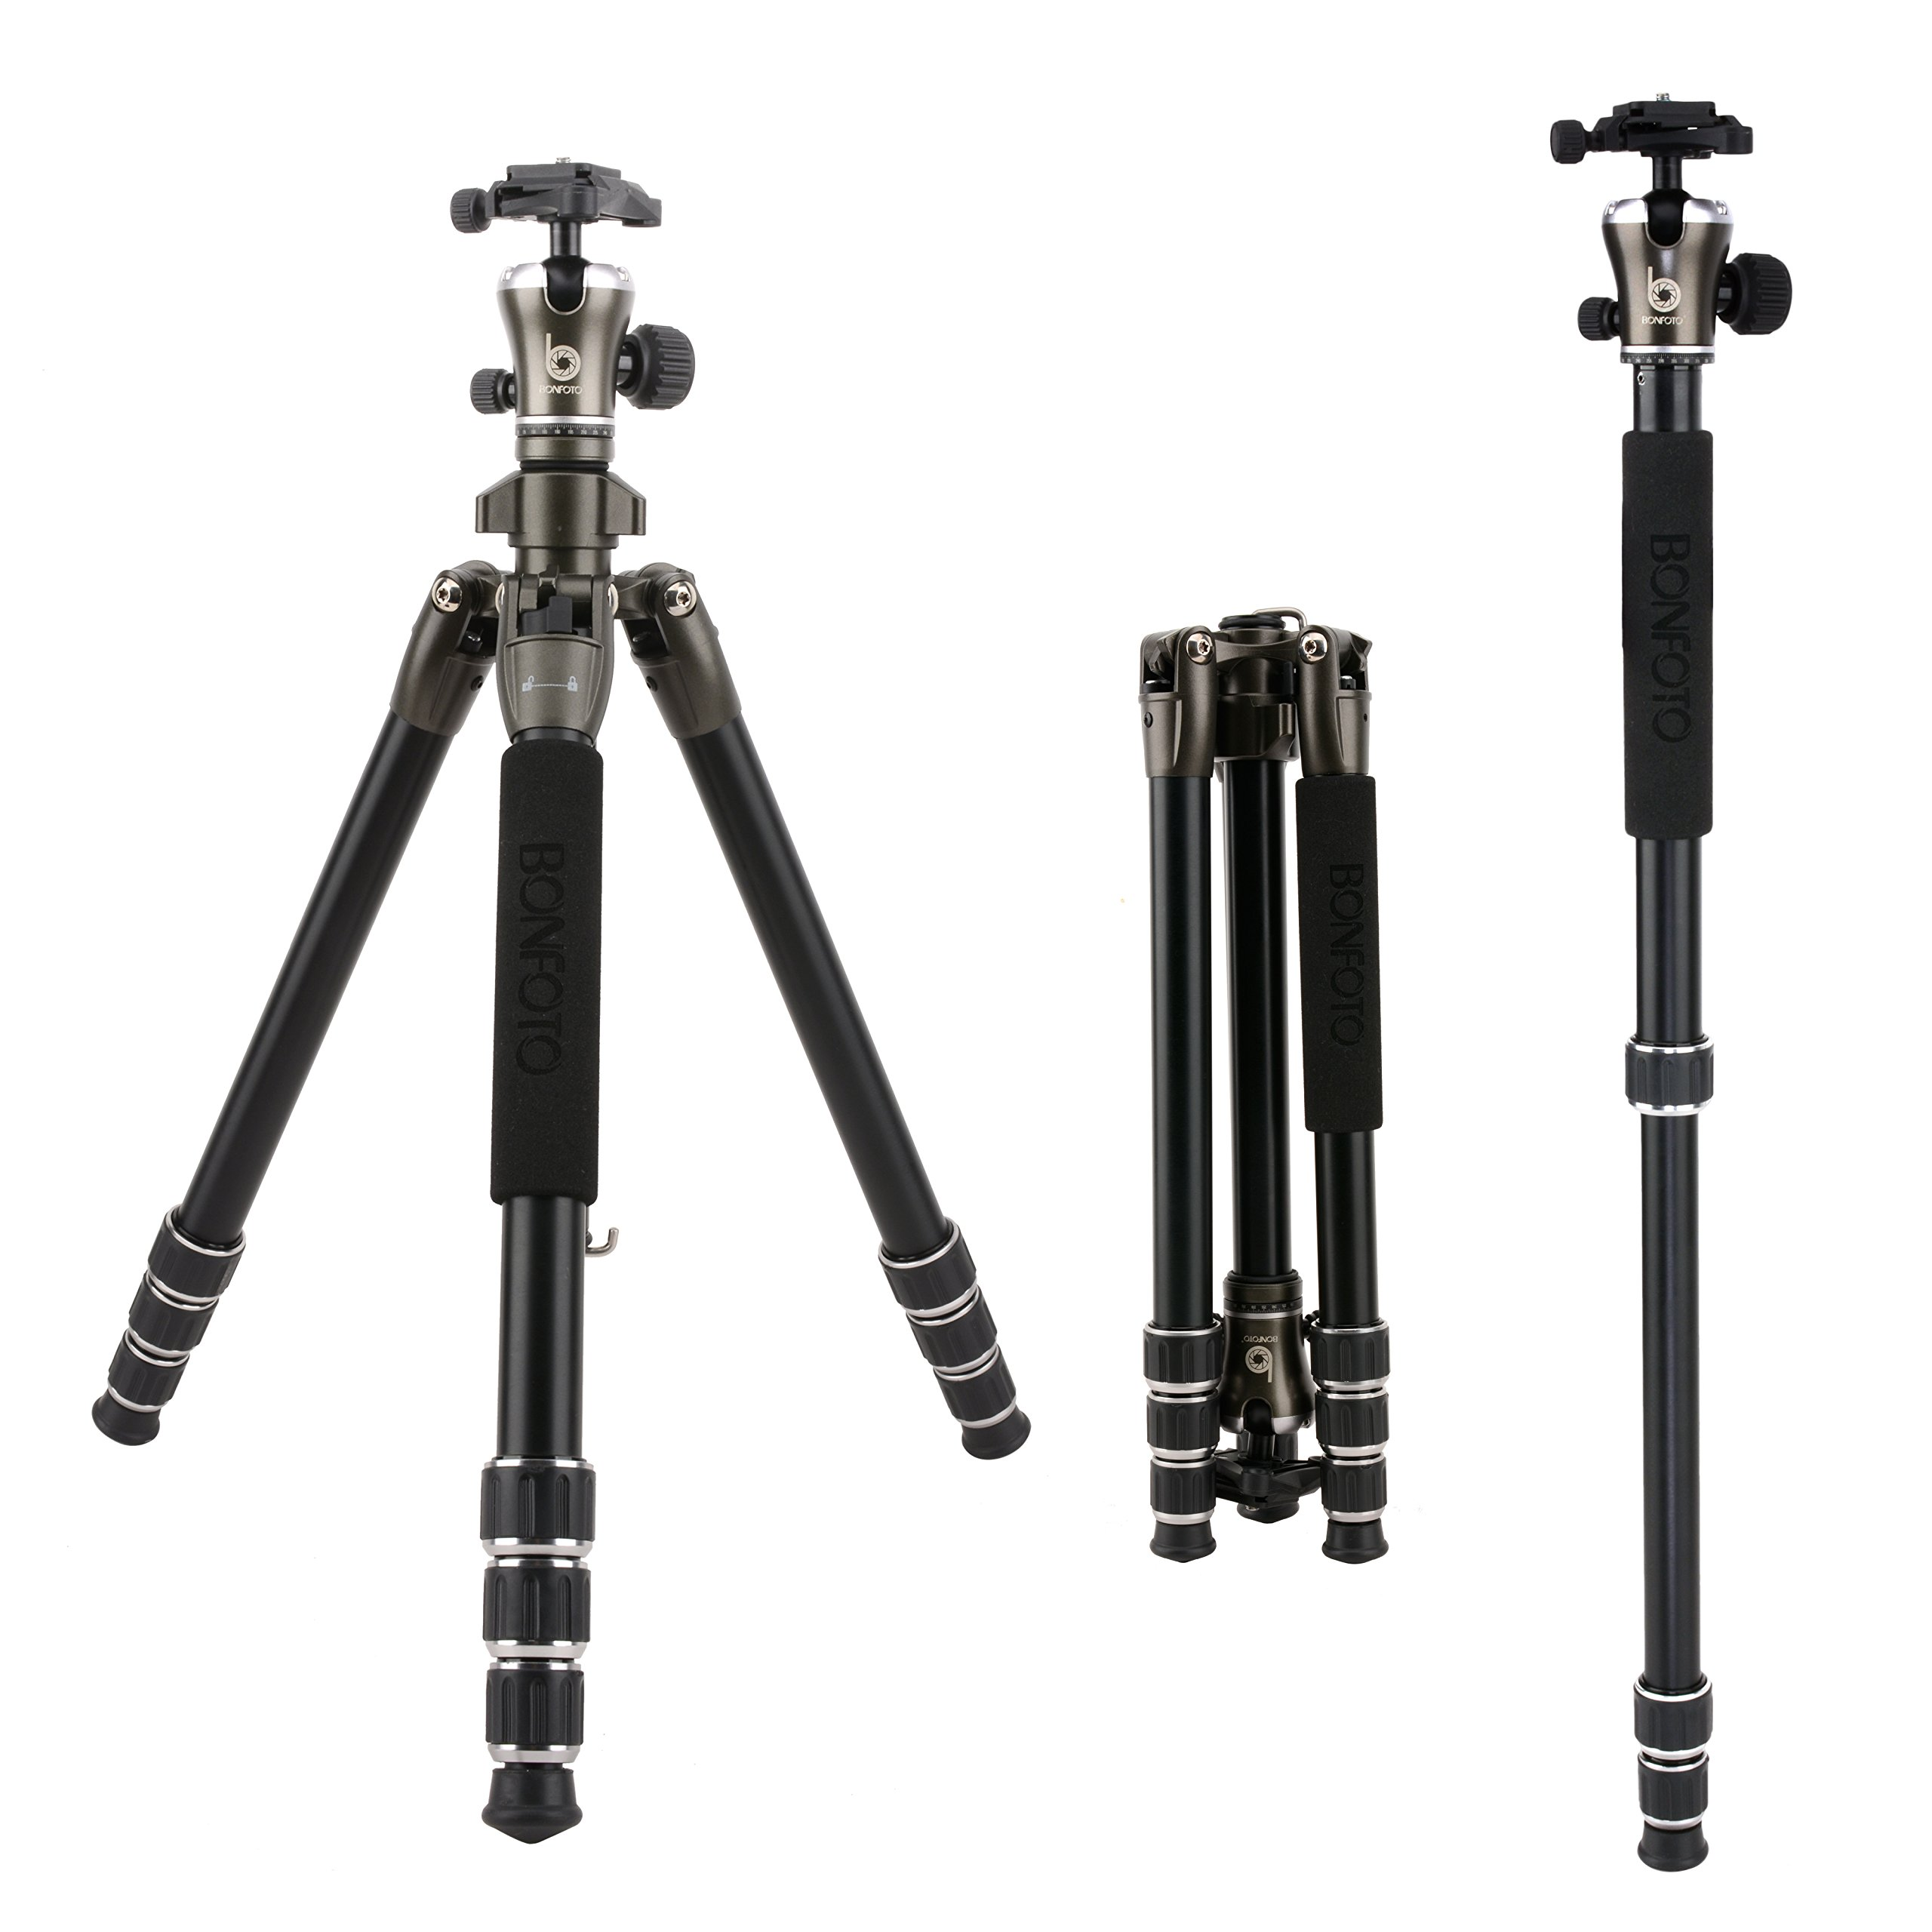 BONFOTO 55 Inch B671A Lightweight Aluminum Alloy Camera Travel Tripod and Monopod with 360 Degree Ball Head + Two 1/4'' Quick Release Plates + Carry Bag for Canon Nikon Sony DSLR DV and Digital Camera